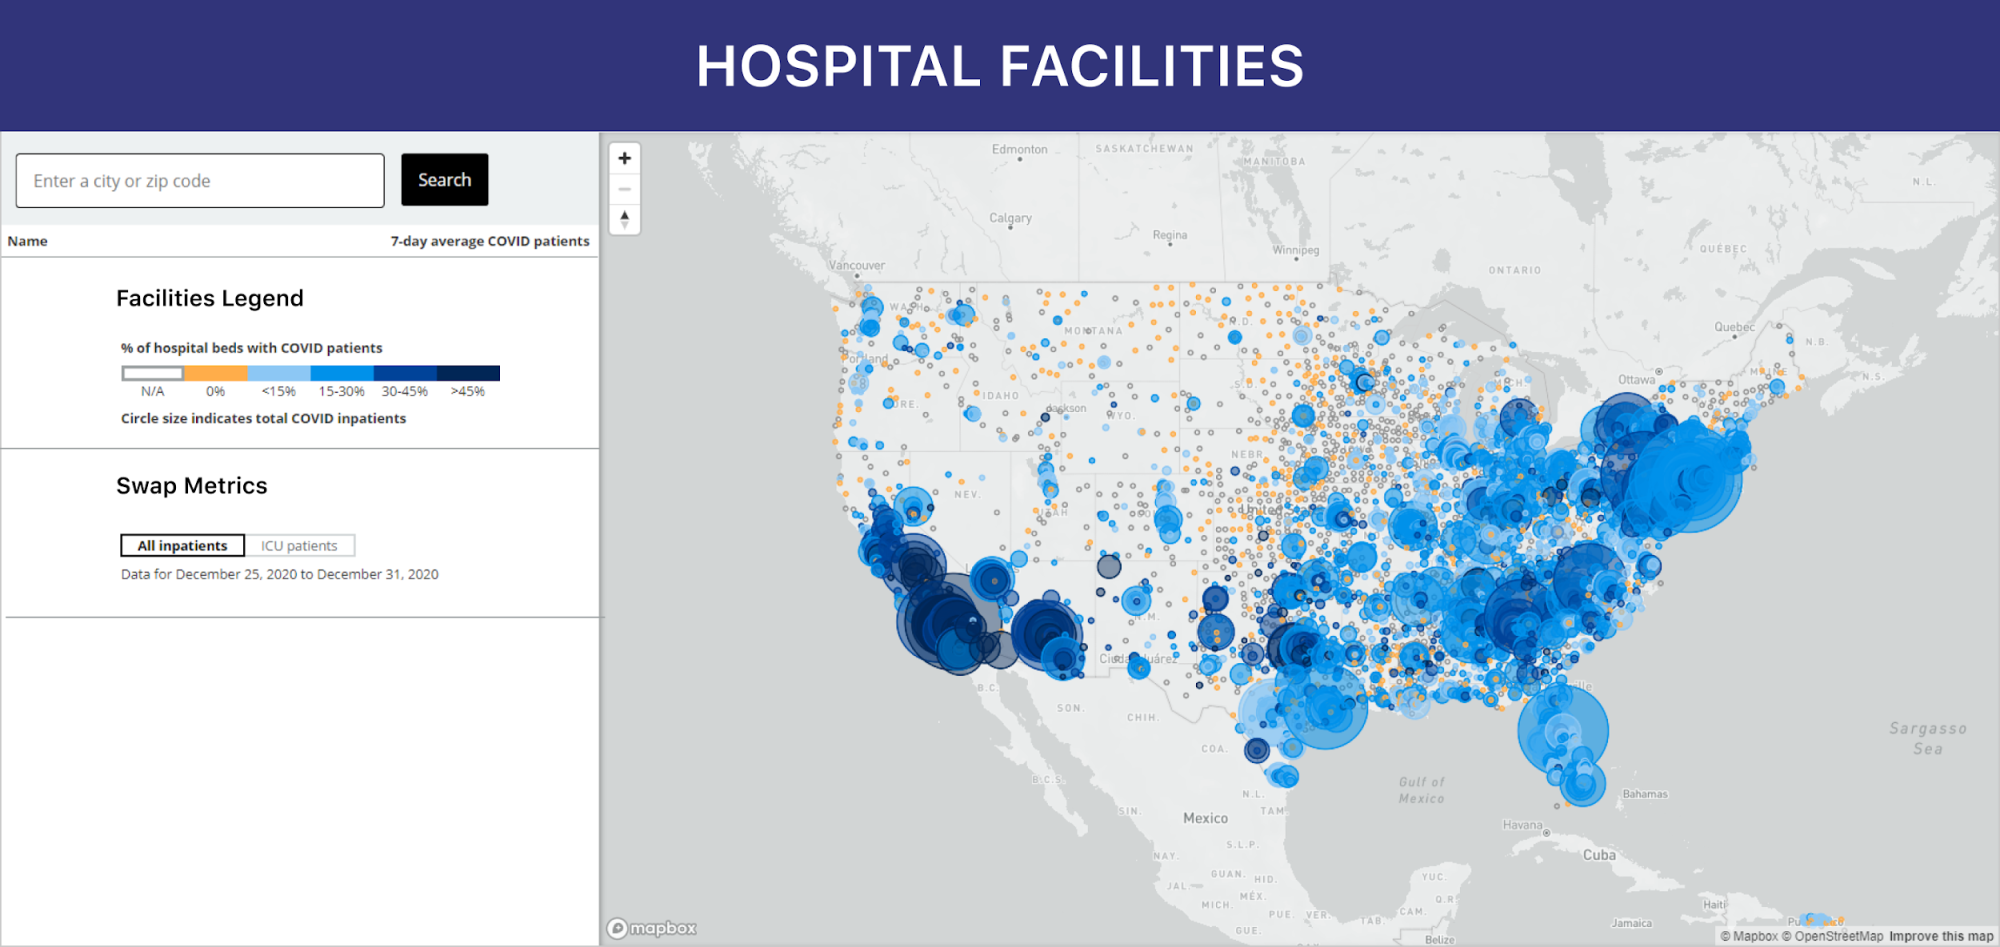 Interactive map of hospitals across the US, showing each facility's COVID-19 patient load and remaining bed capacity.